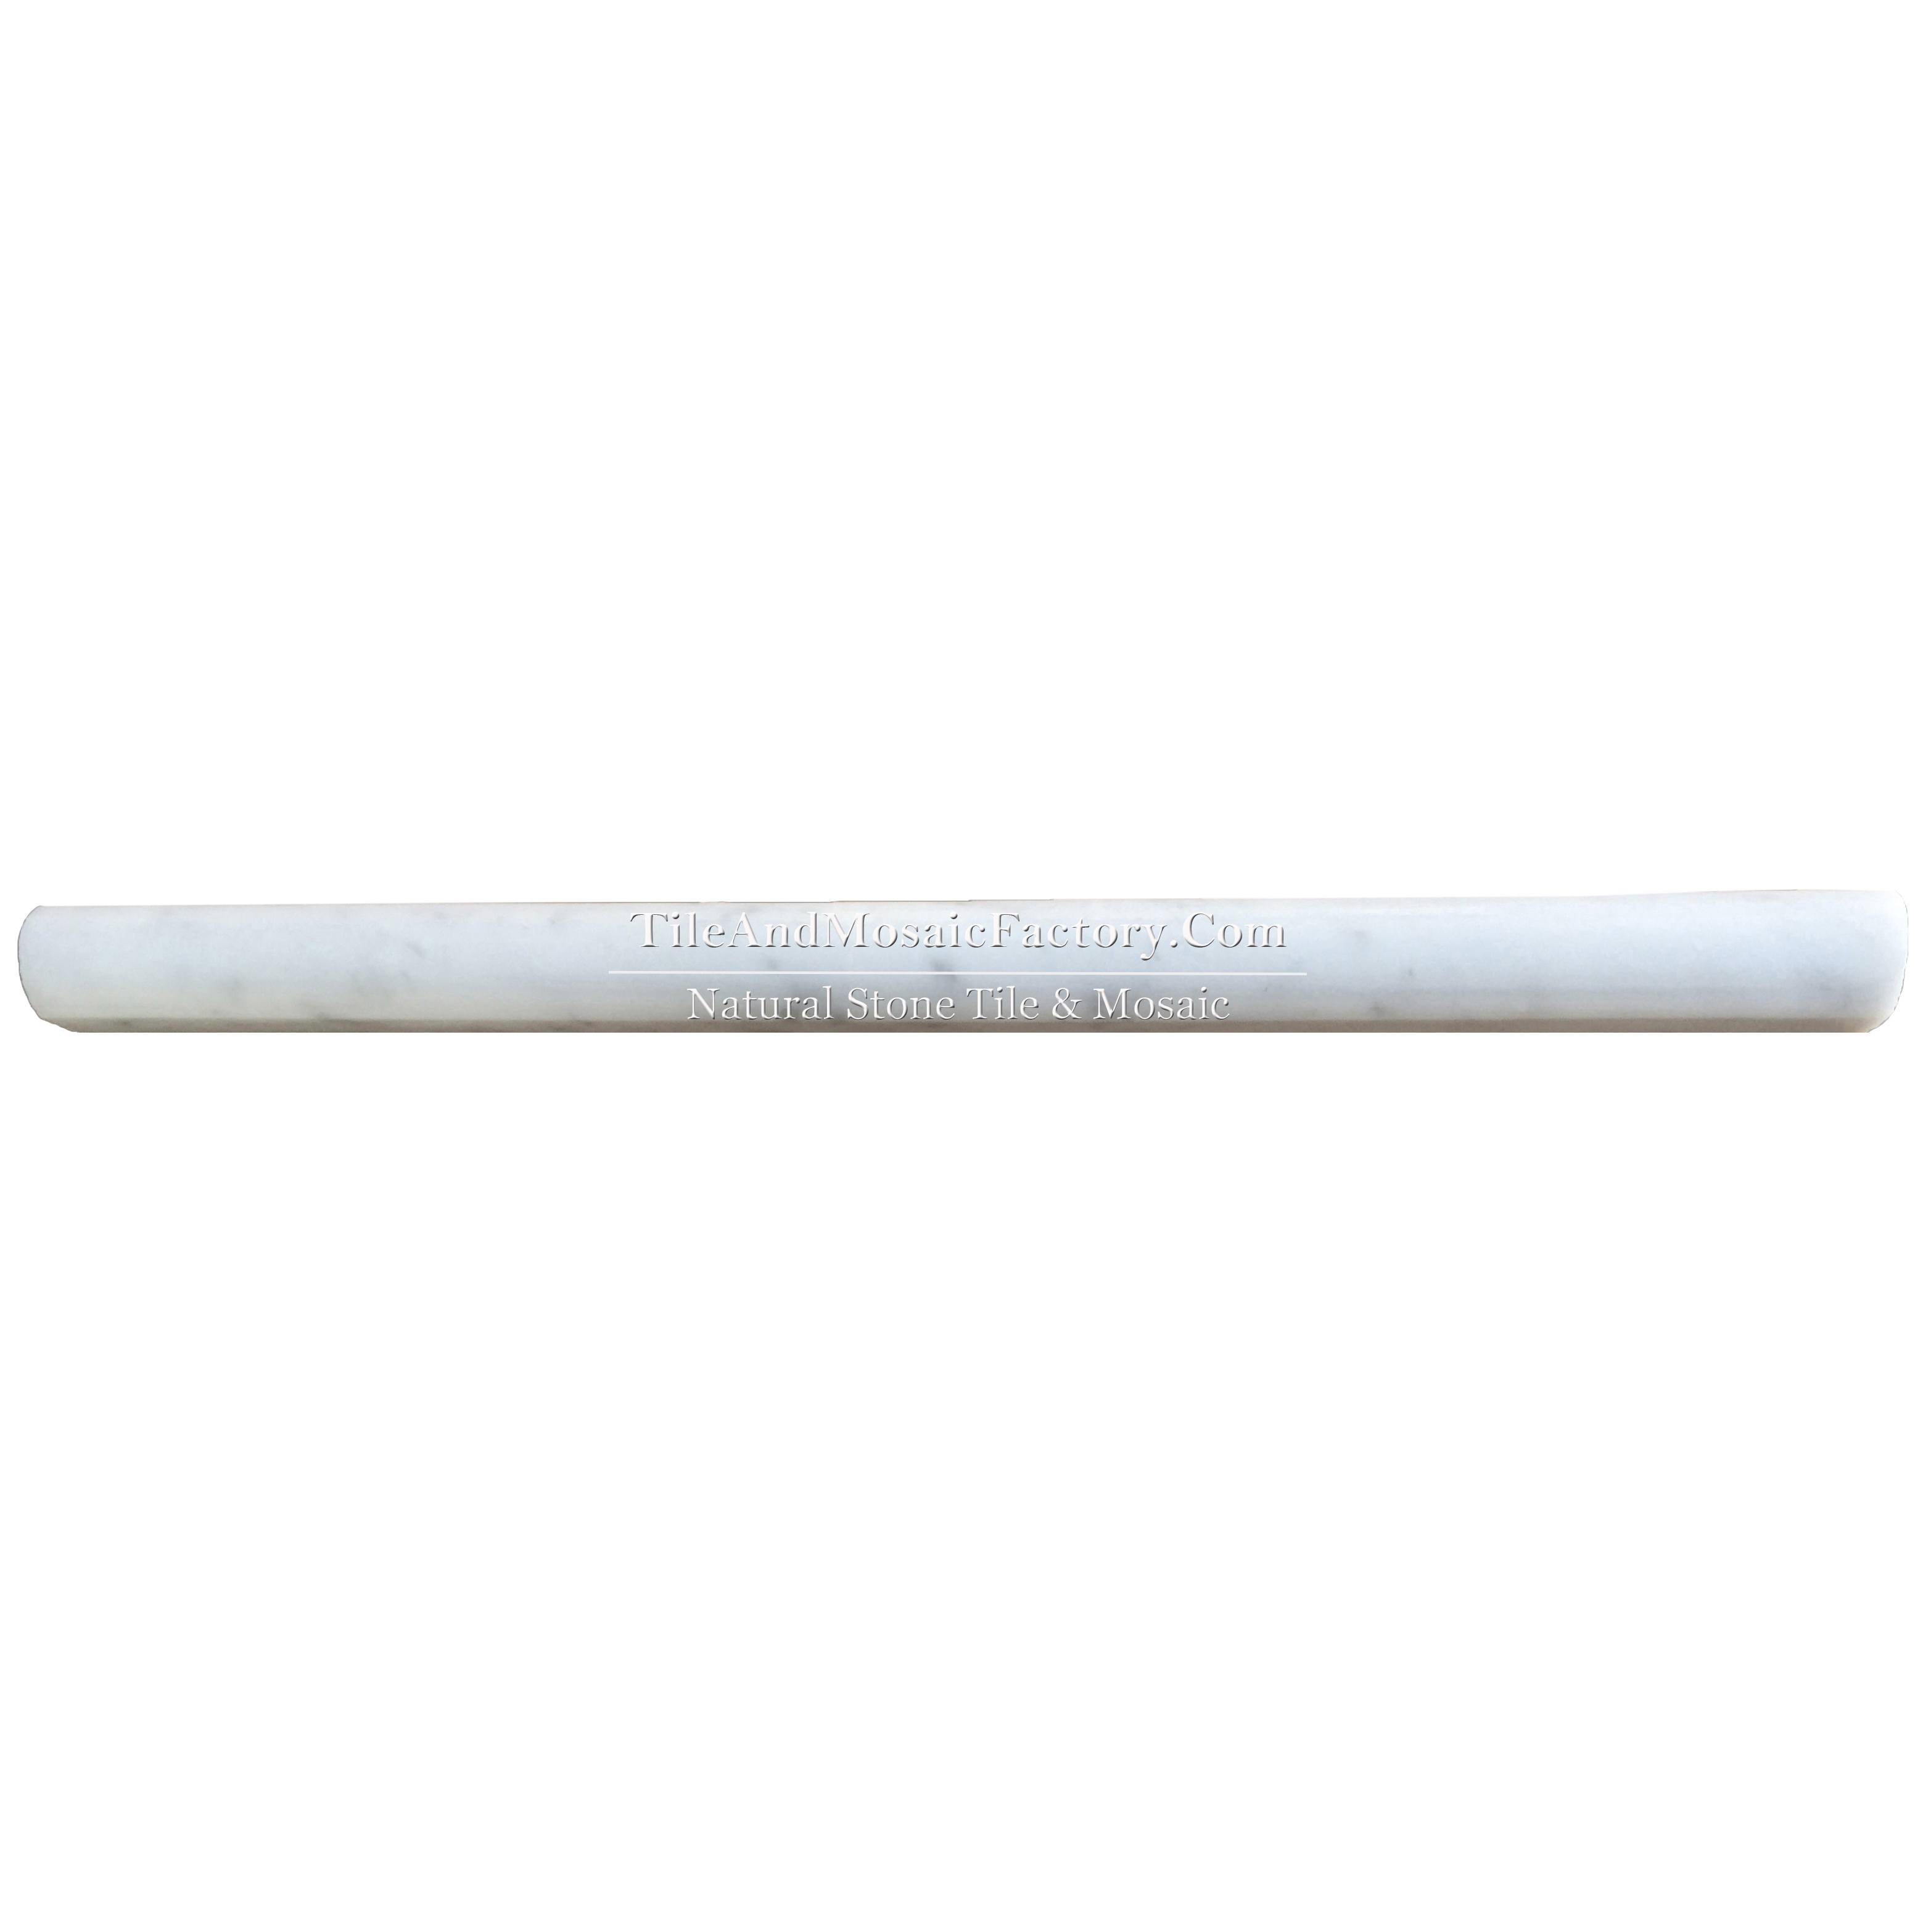 Bianco Carrara C  Cane 1x12 Molding polished White color Marble Border